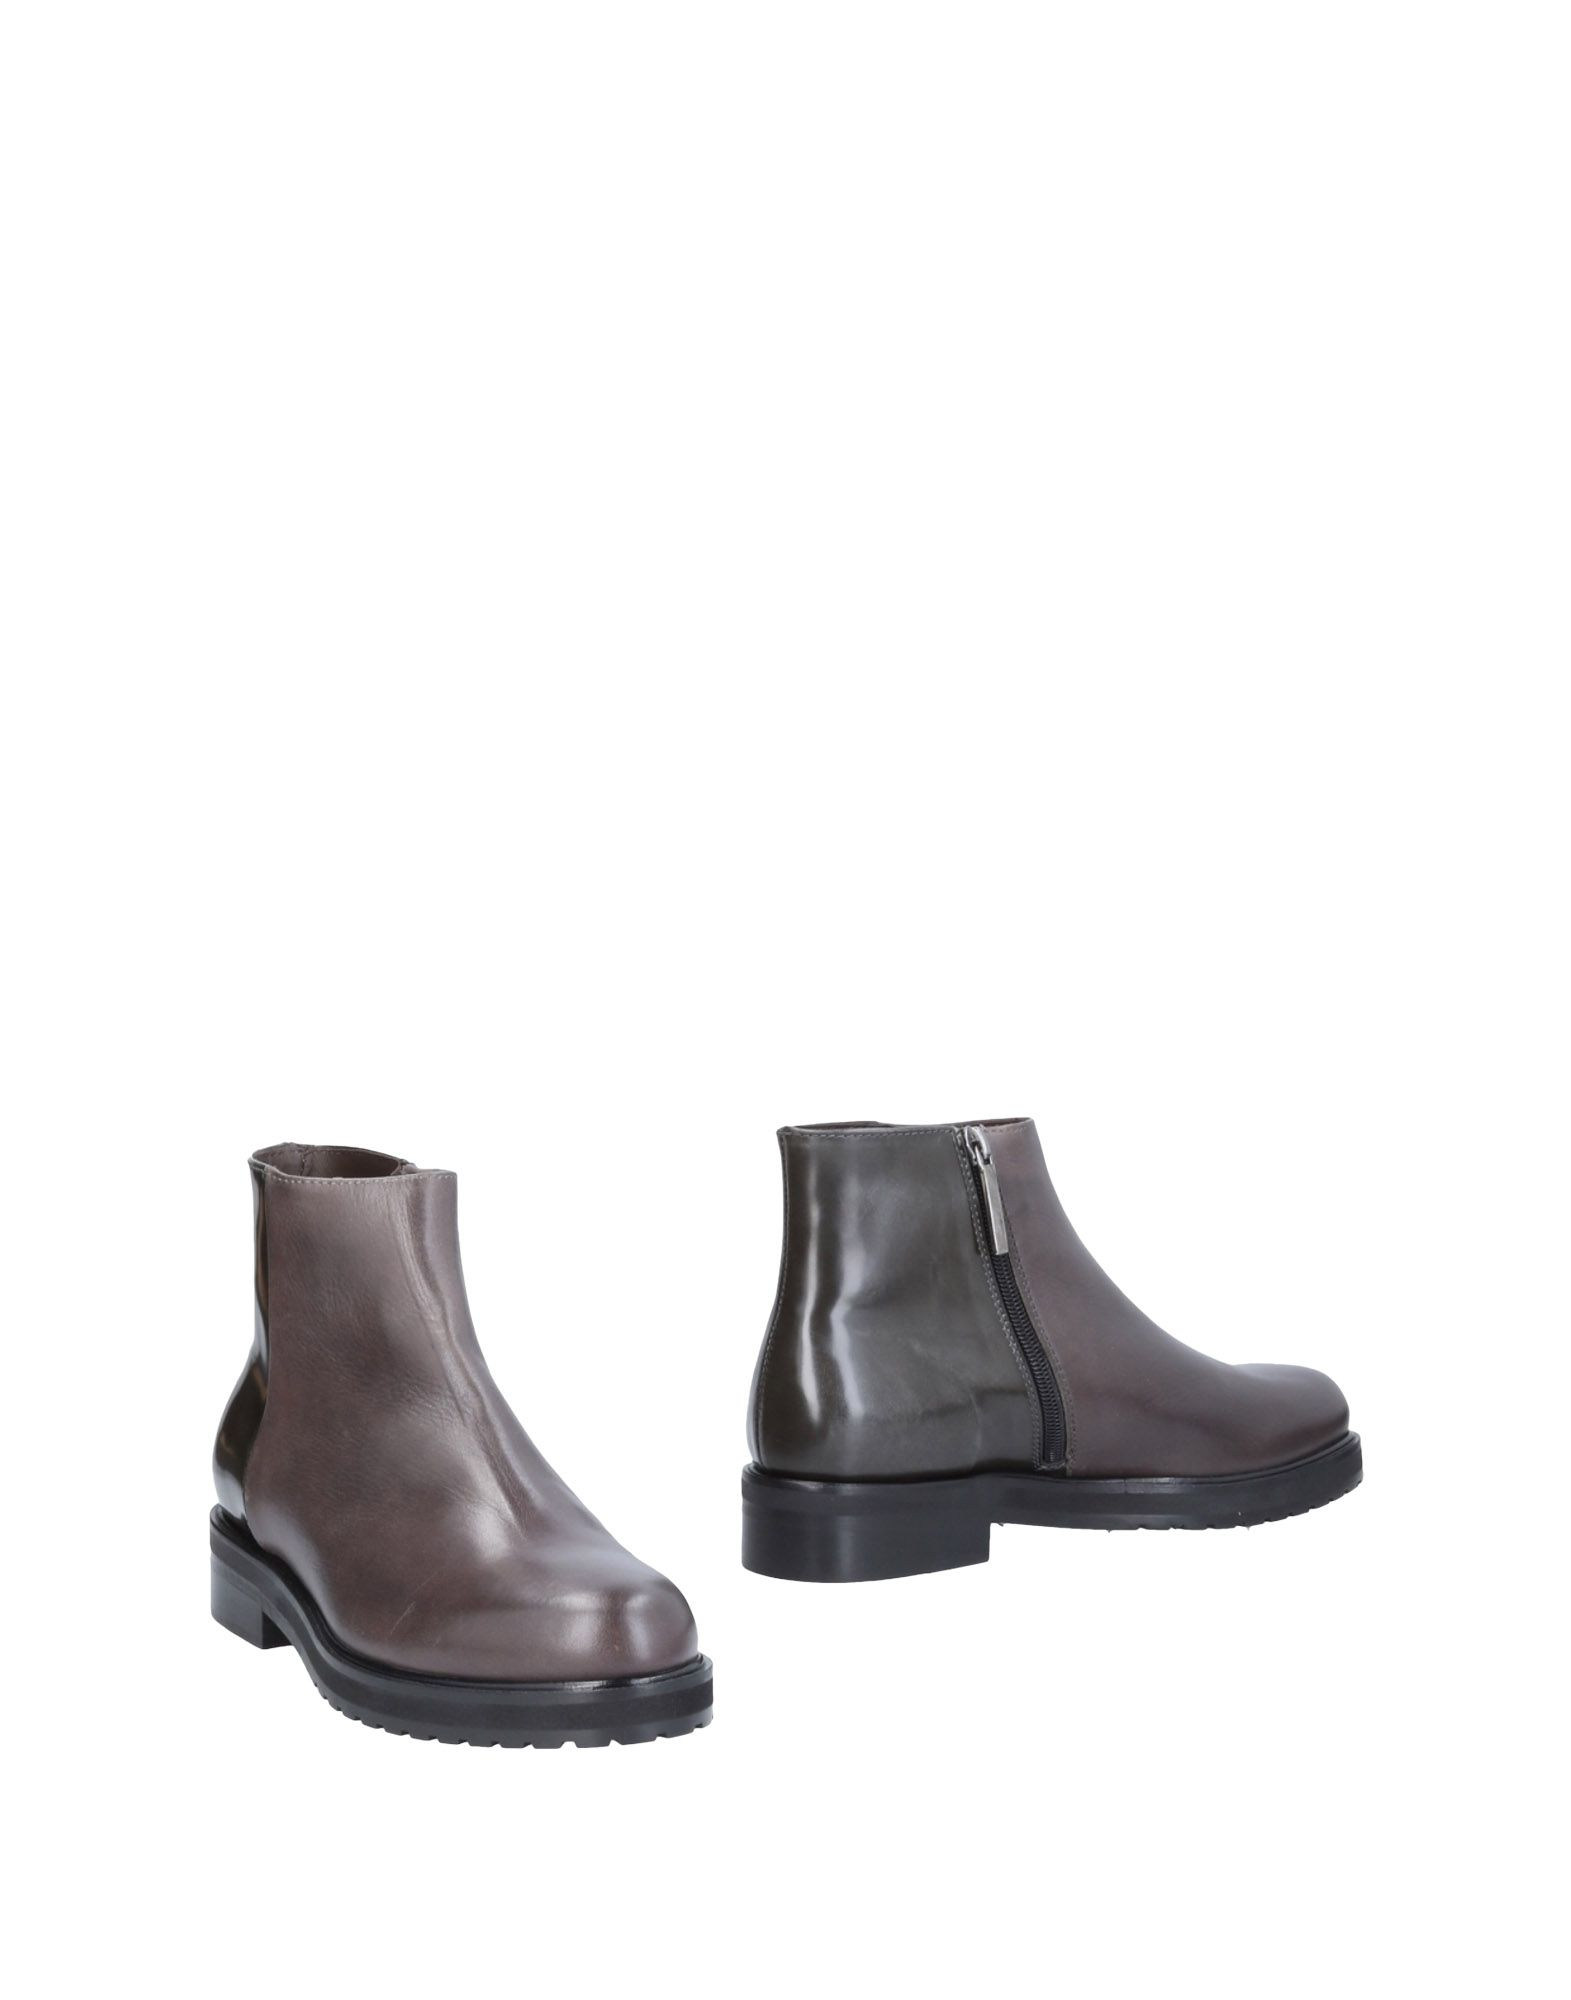 Mauro Ferrini Ankle Boot - Women Mauro Ferrini  Ankle Boots online on  Ferrini United Kingdom - 11459812QJ 052bf5